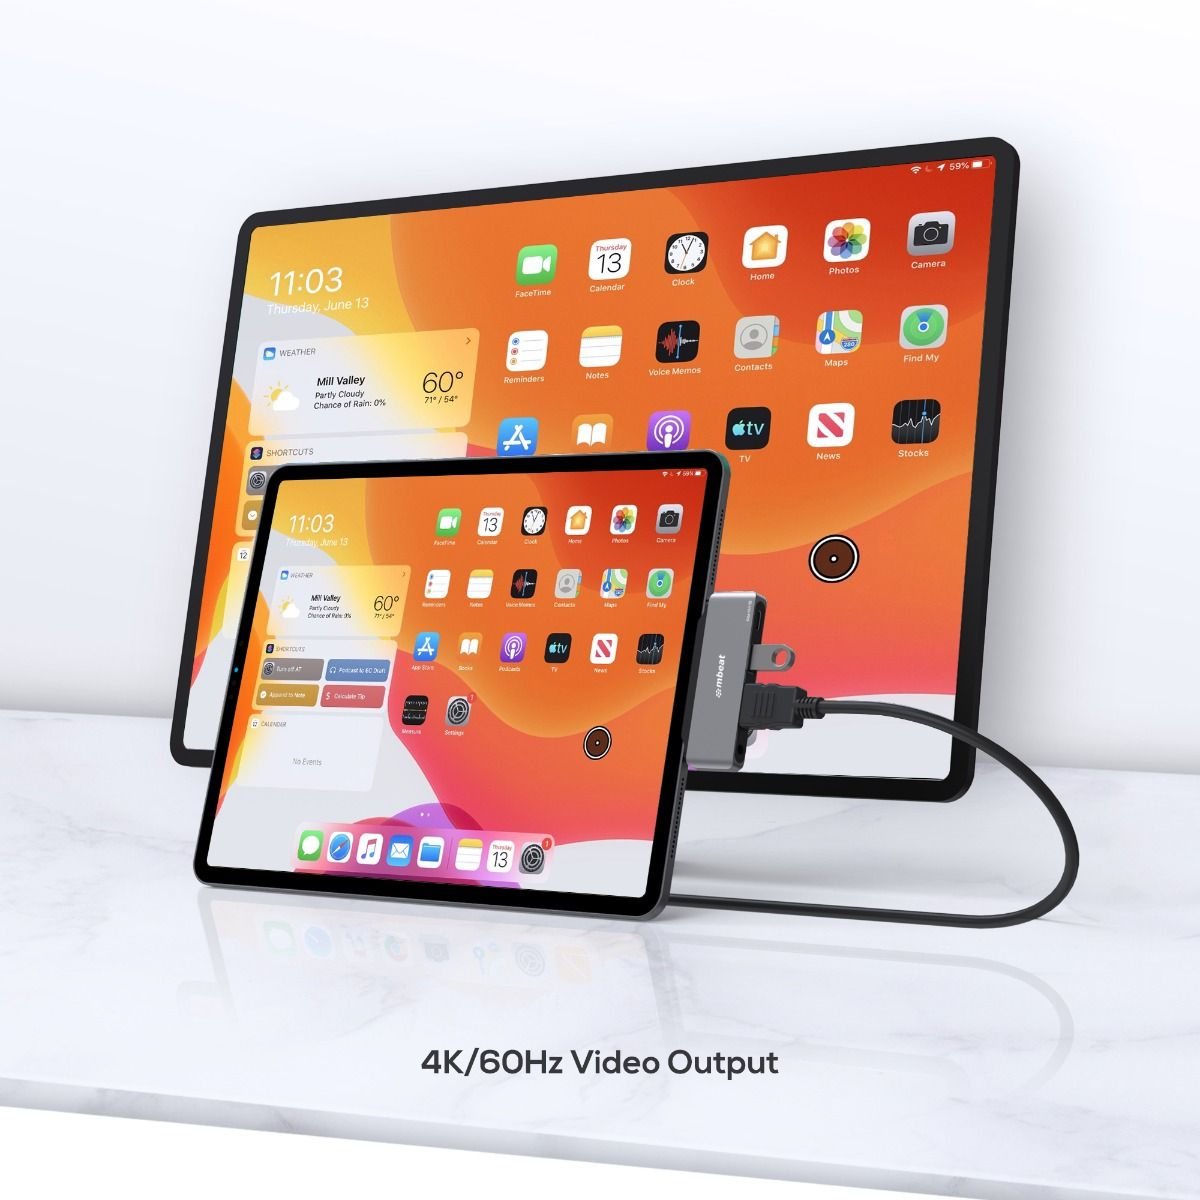 A large marketing image providing additional information about the product mBeat Elite Mini 4-in-1 USB-C Mobile Hub For IPad Pro - Additional alt info not provided